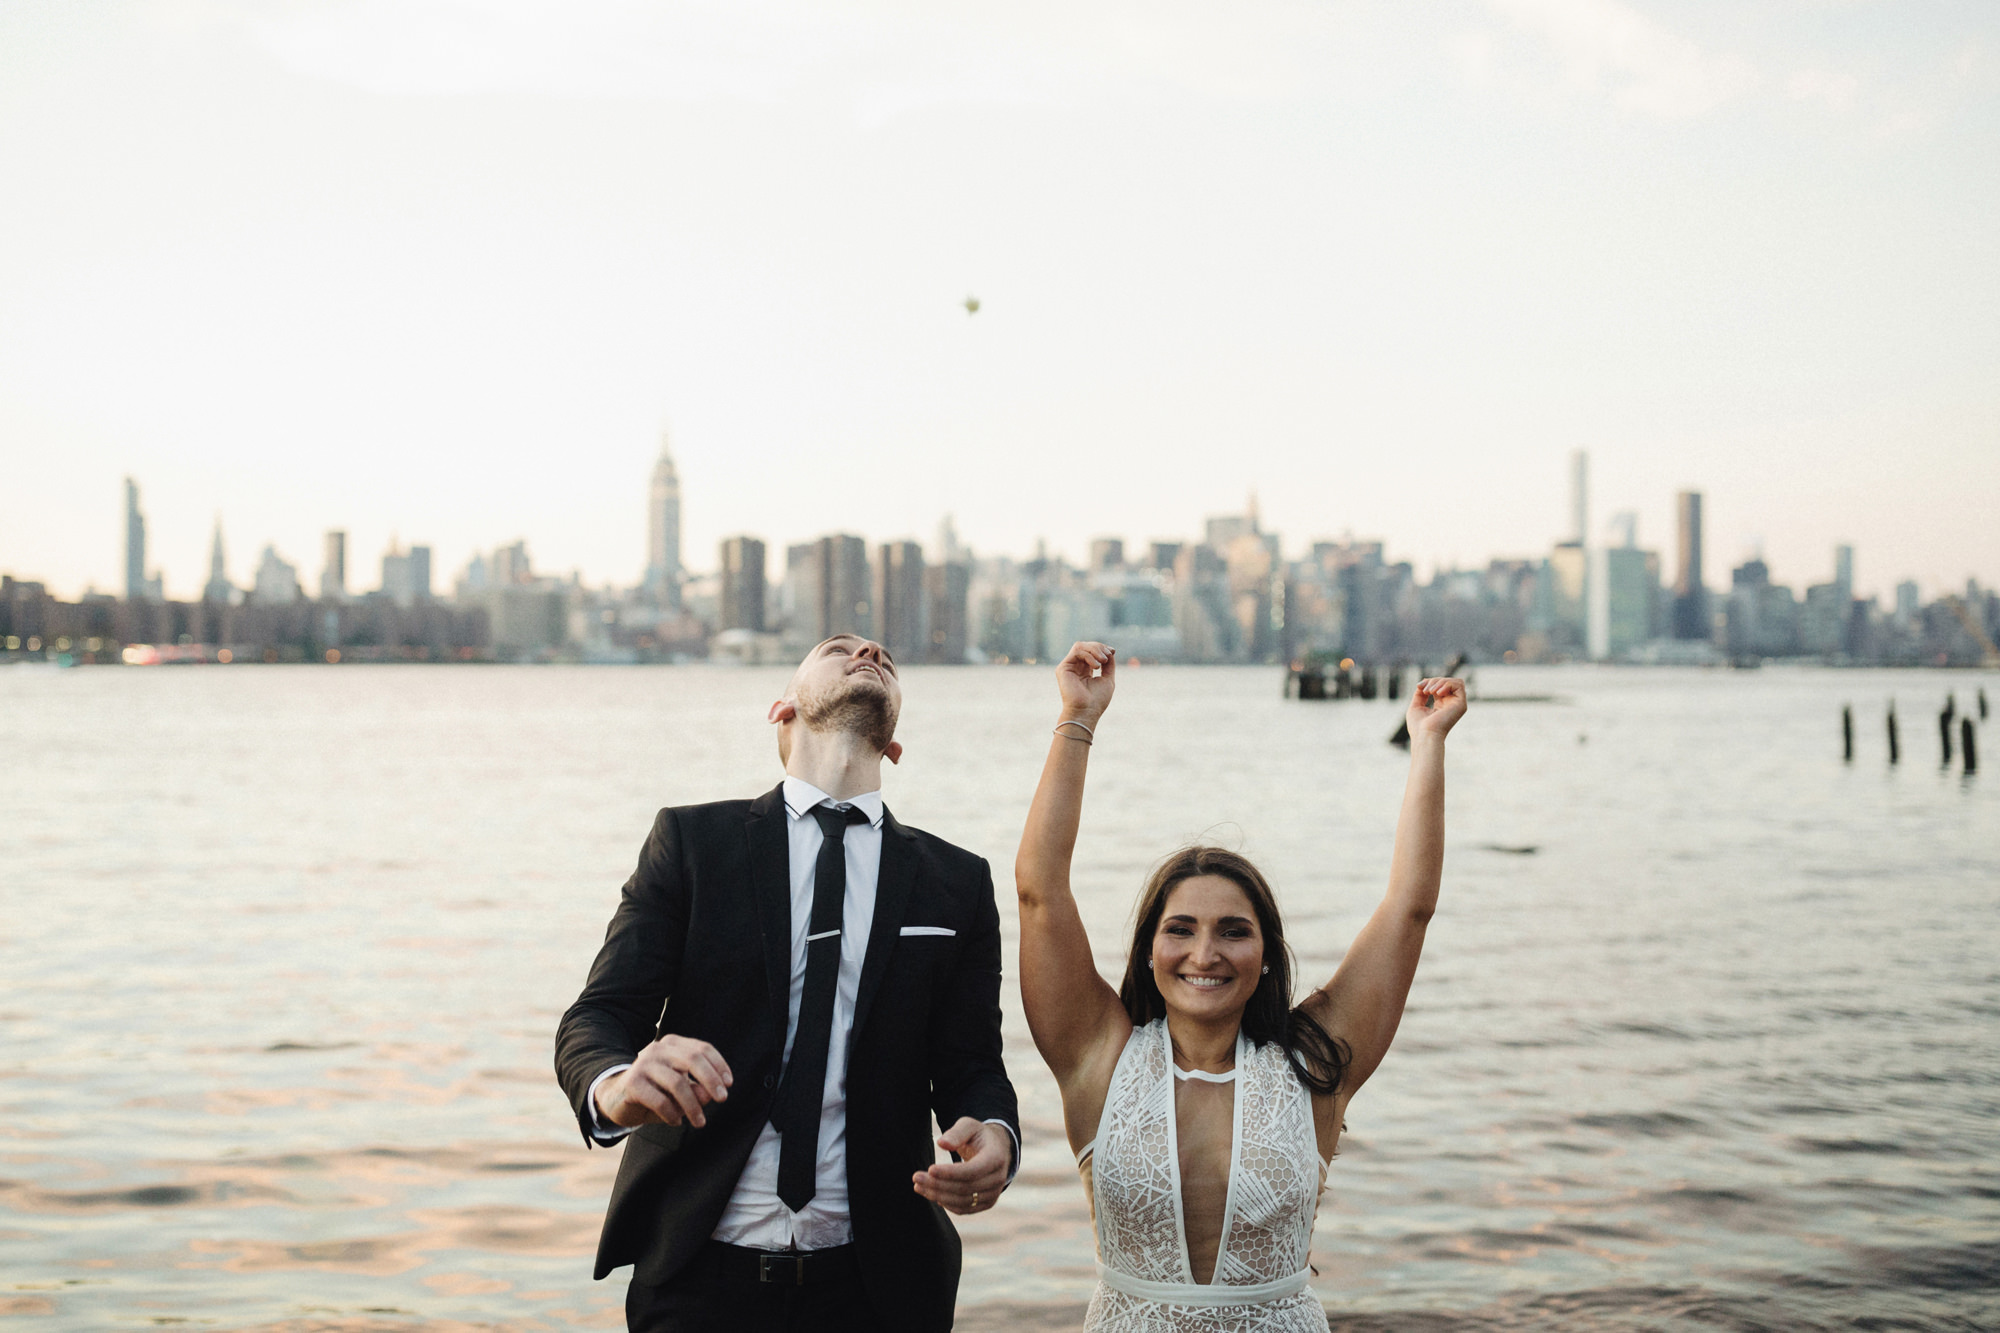 NYC_ELOPEMENT_CITYHALL_BROOKLYN_SAMMBLAKE_0056.jpg